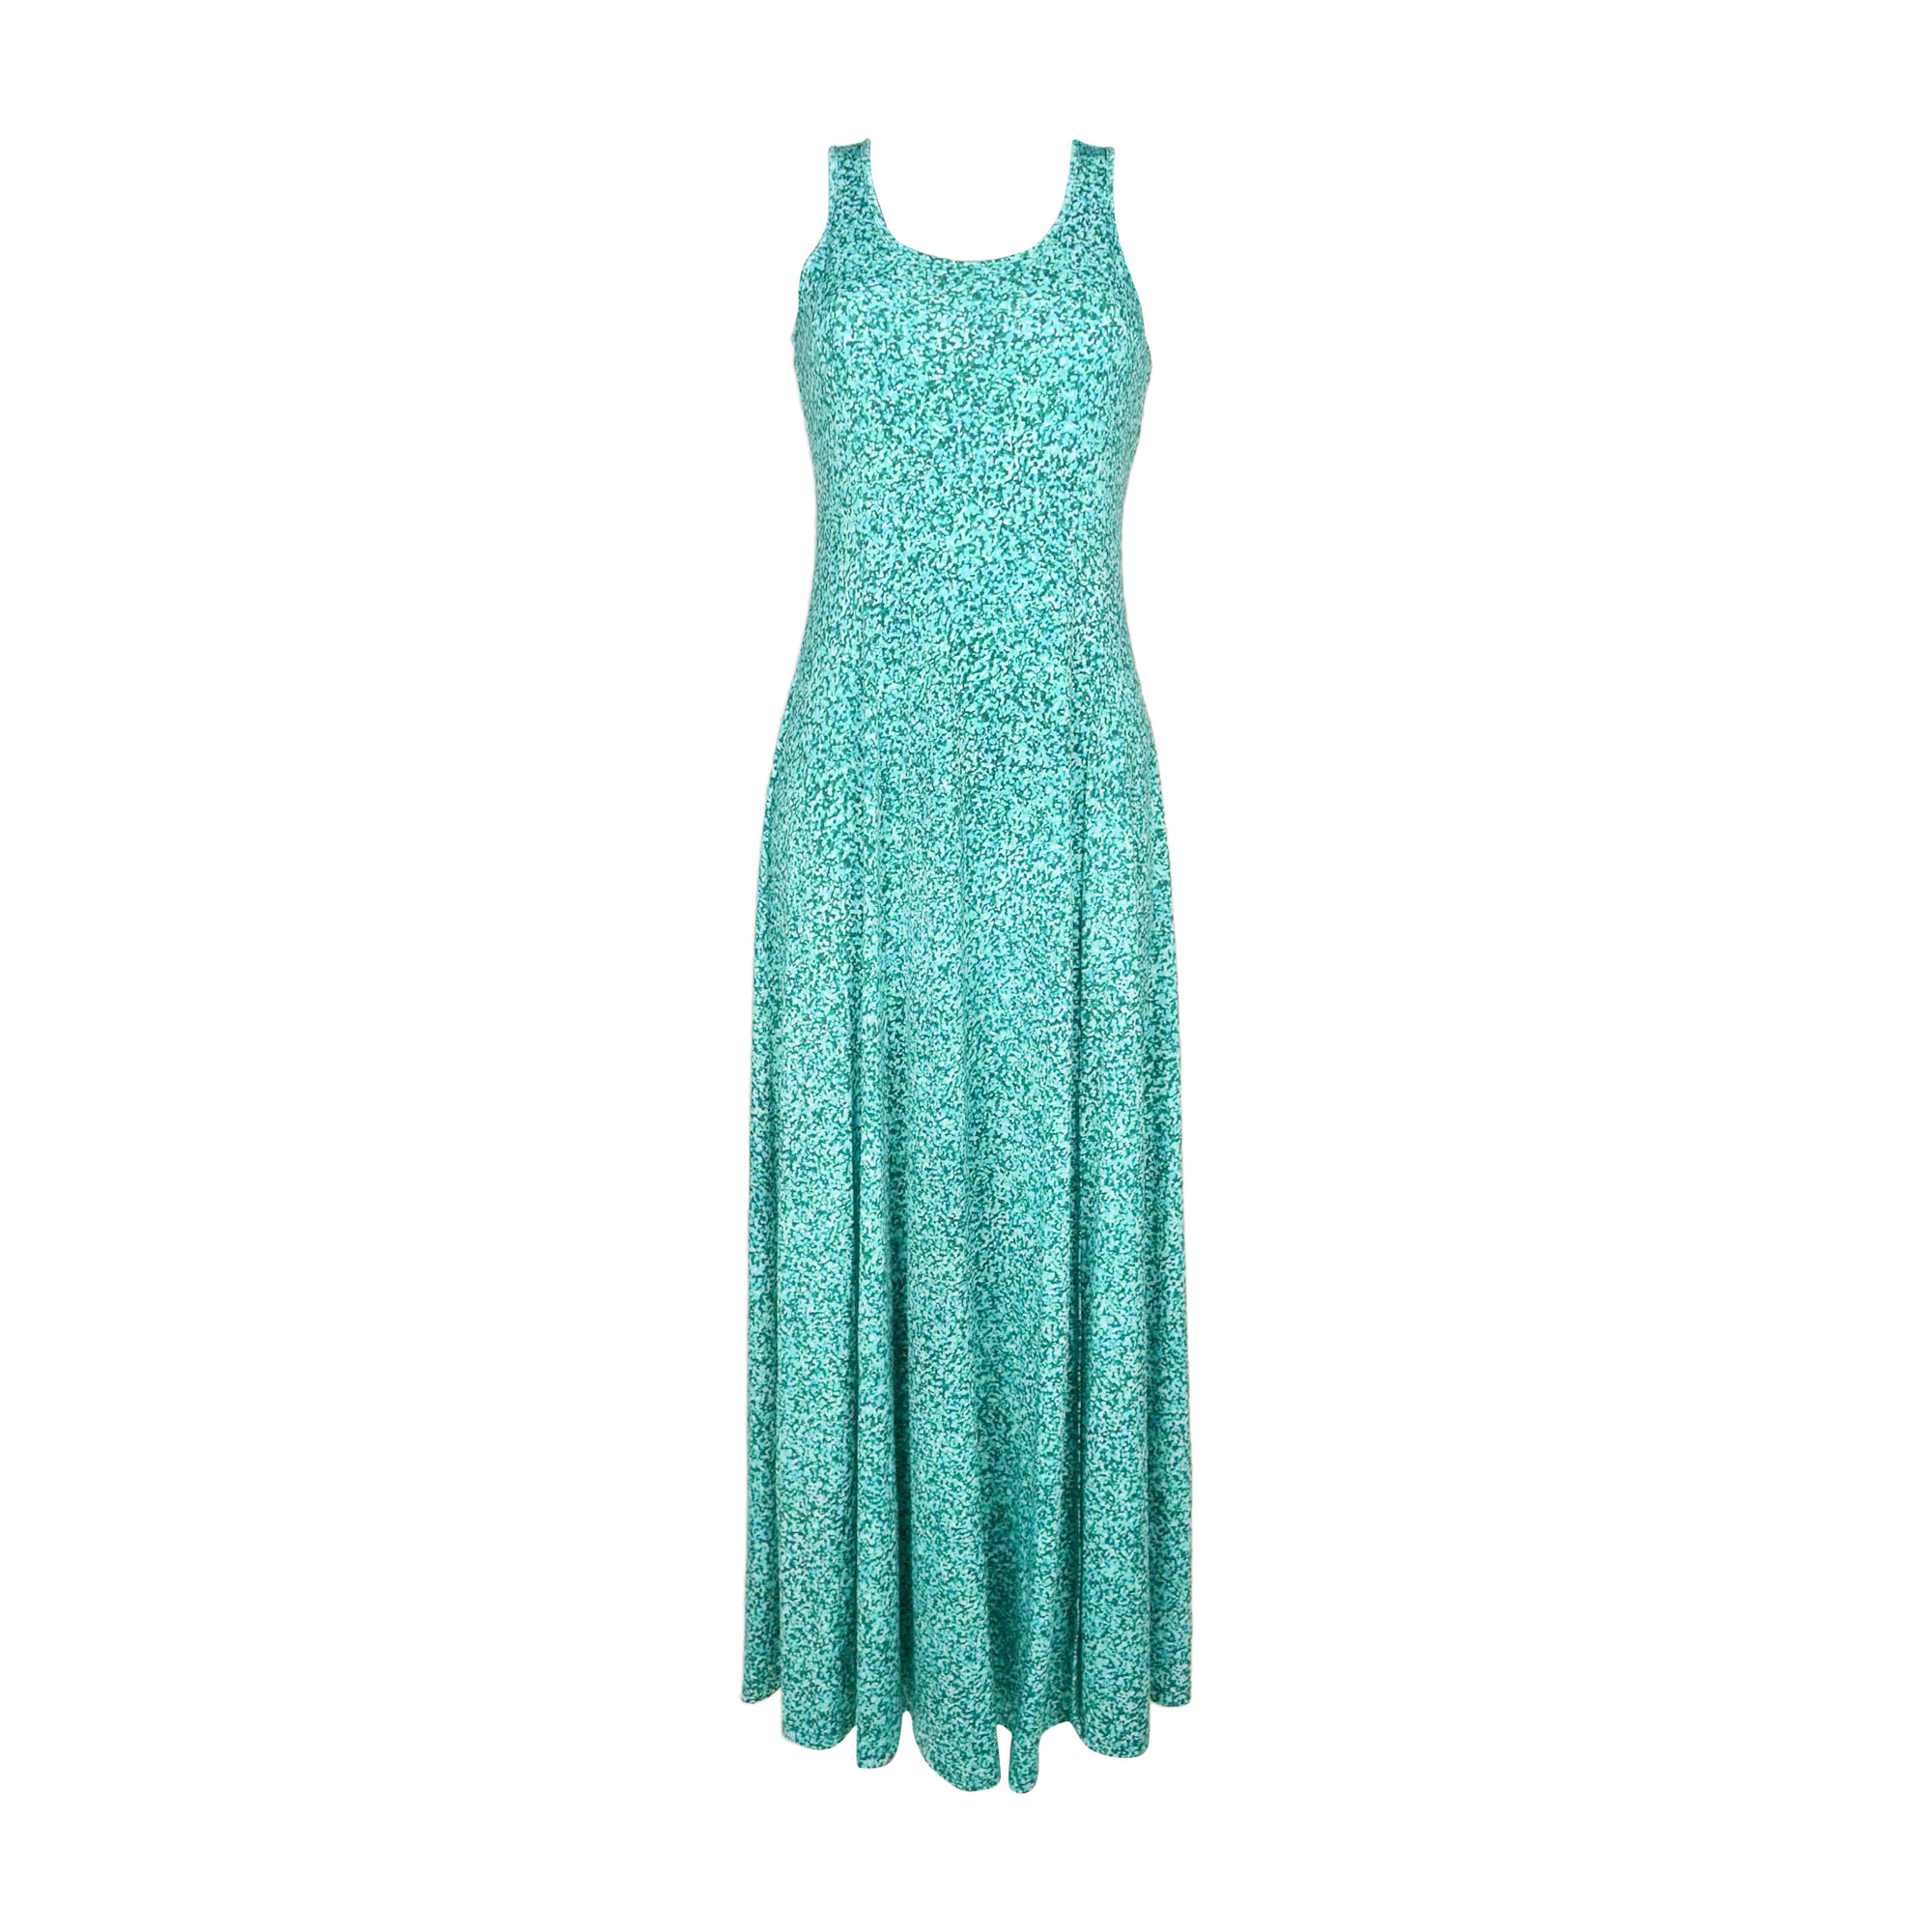 Maxi Dress MICHAEL KORS Green